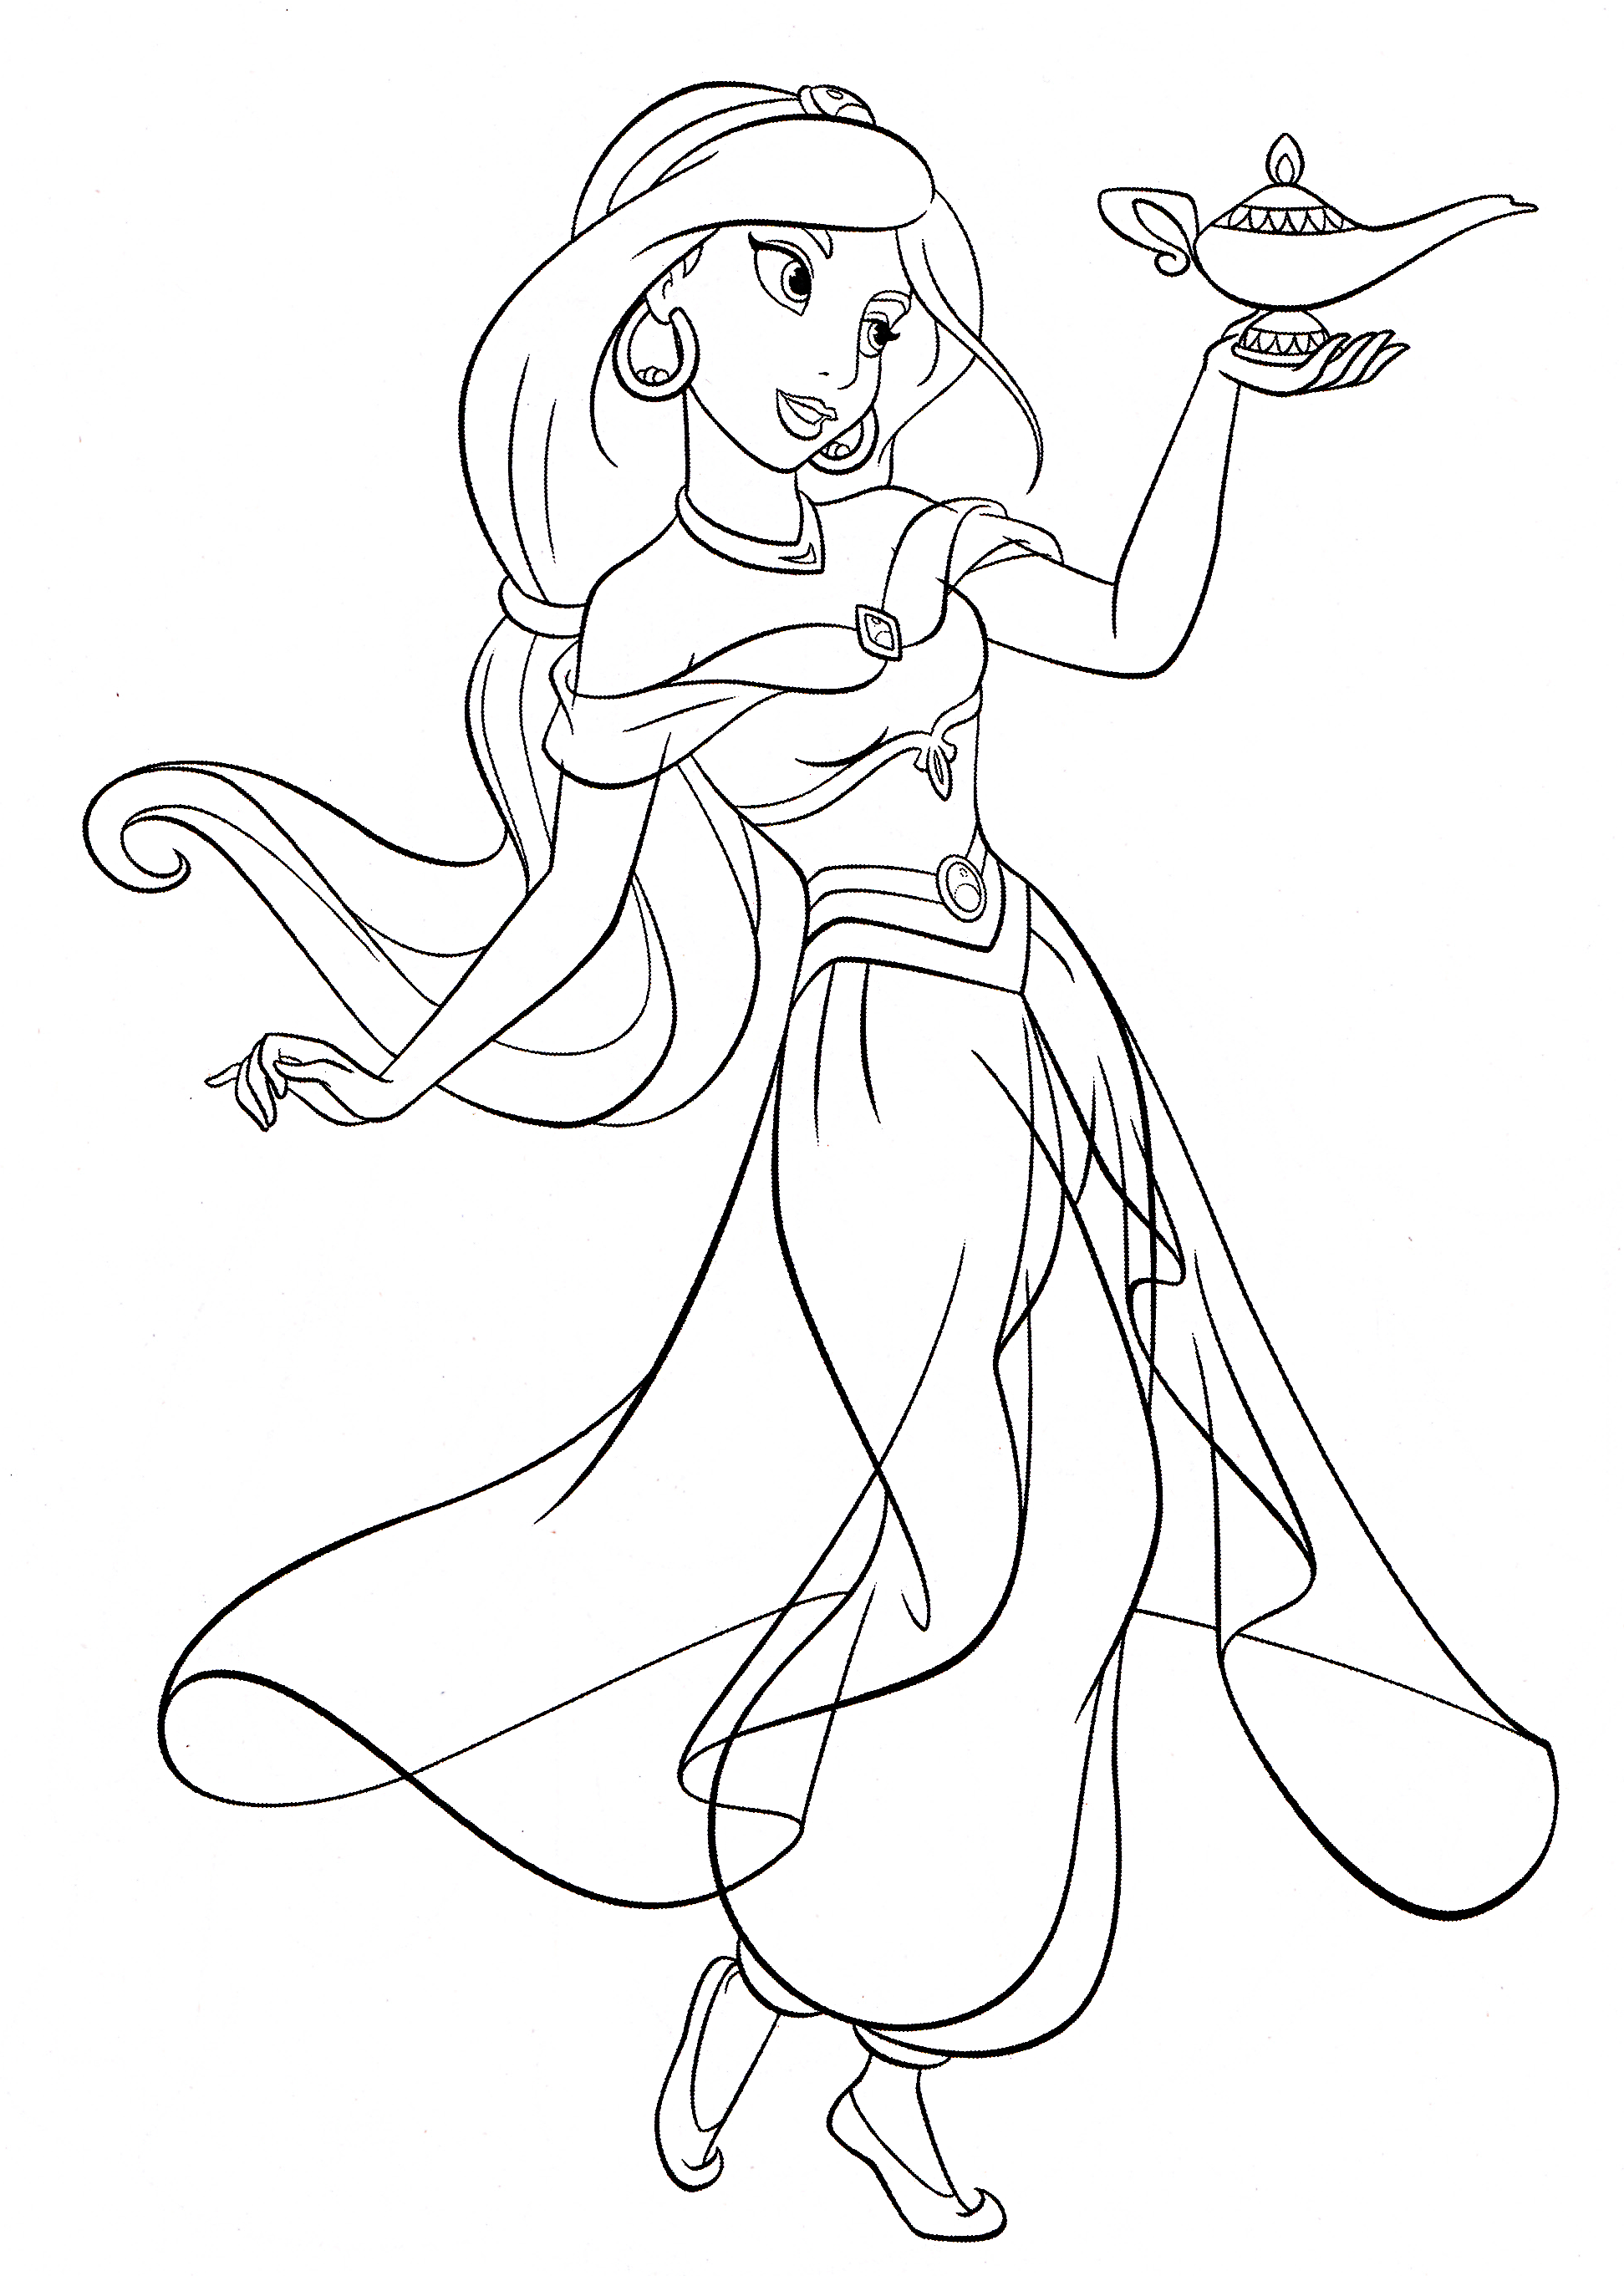 jasmine the princess coloring pages jasmine coloring pages download and print for free